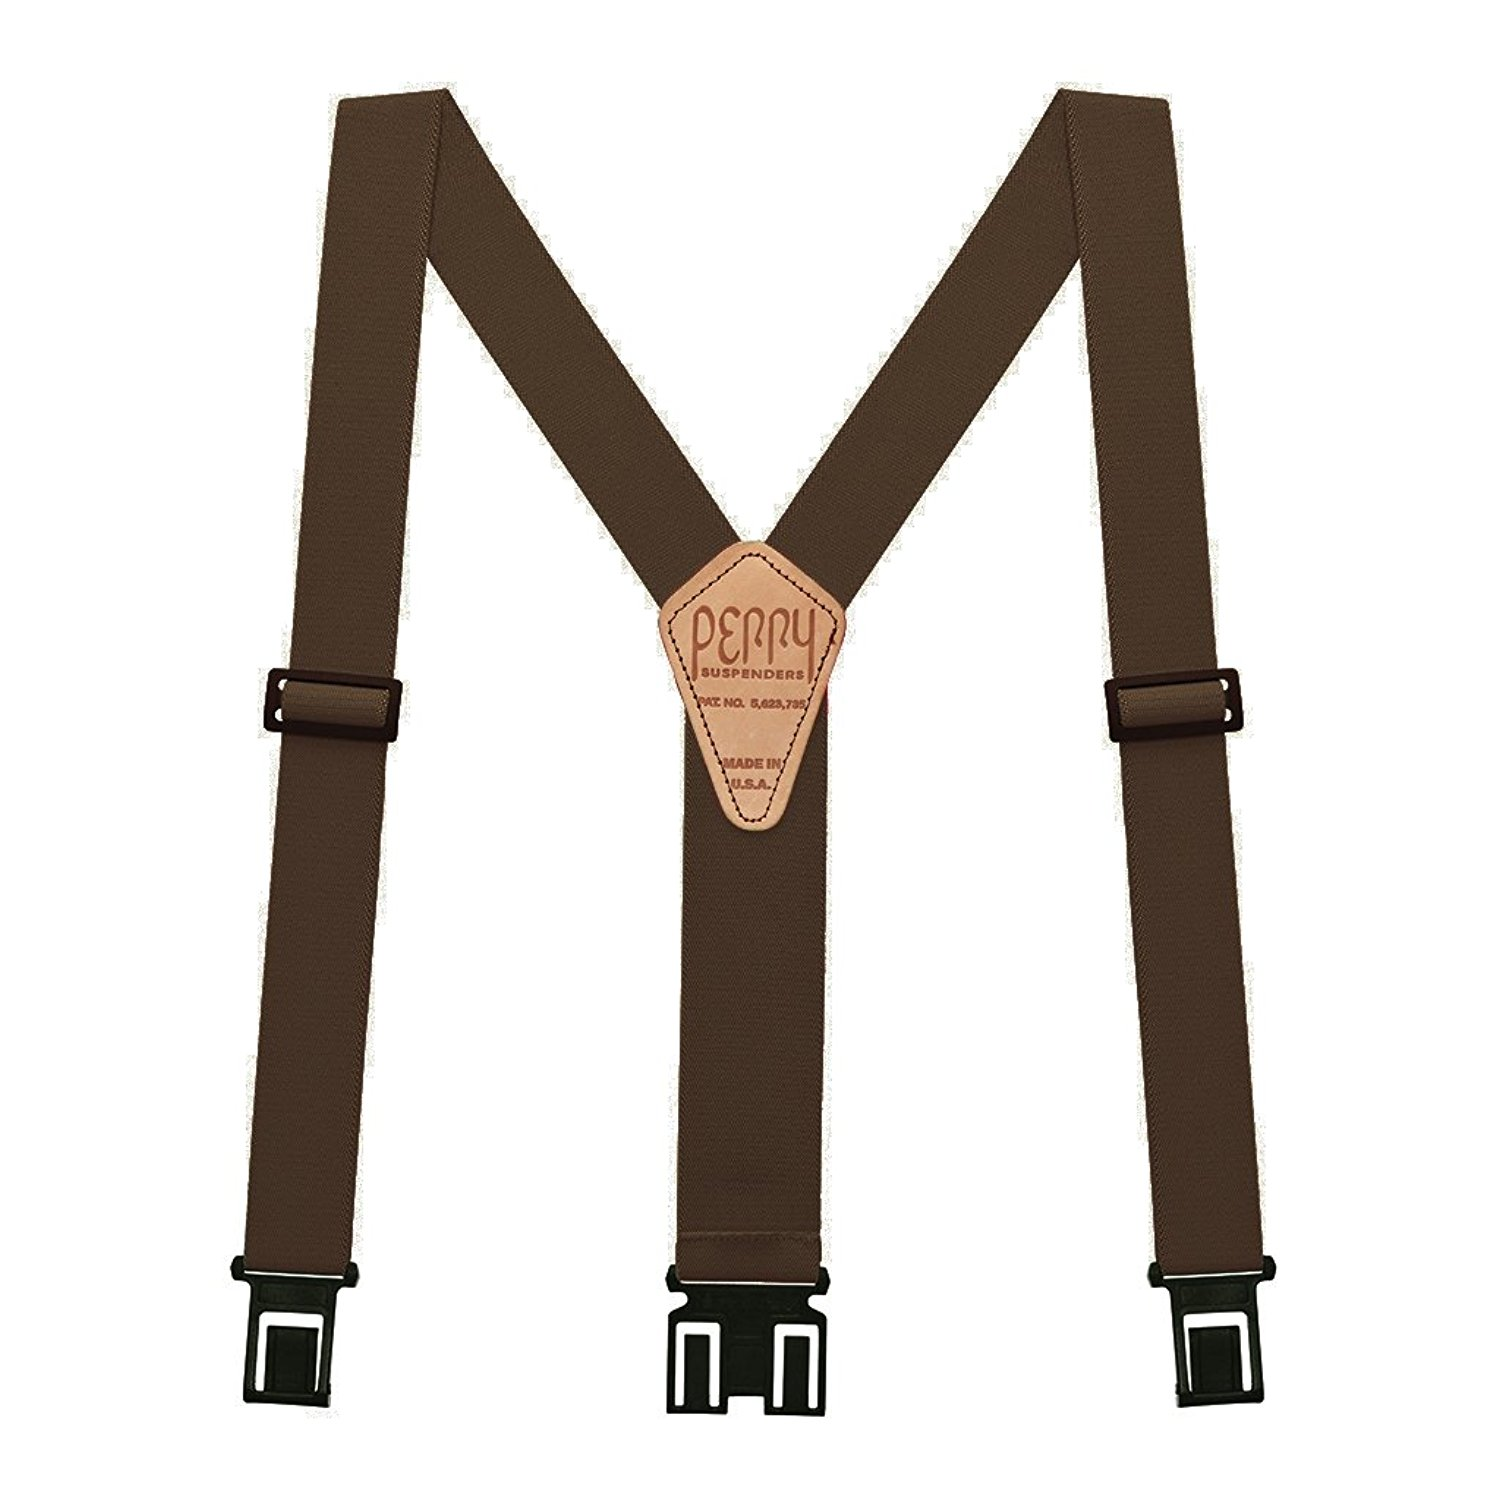 Perry Products SN200 Men's Clip-On 2-in Suspenders(Tall, Brown)